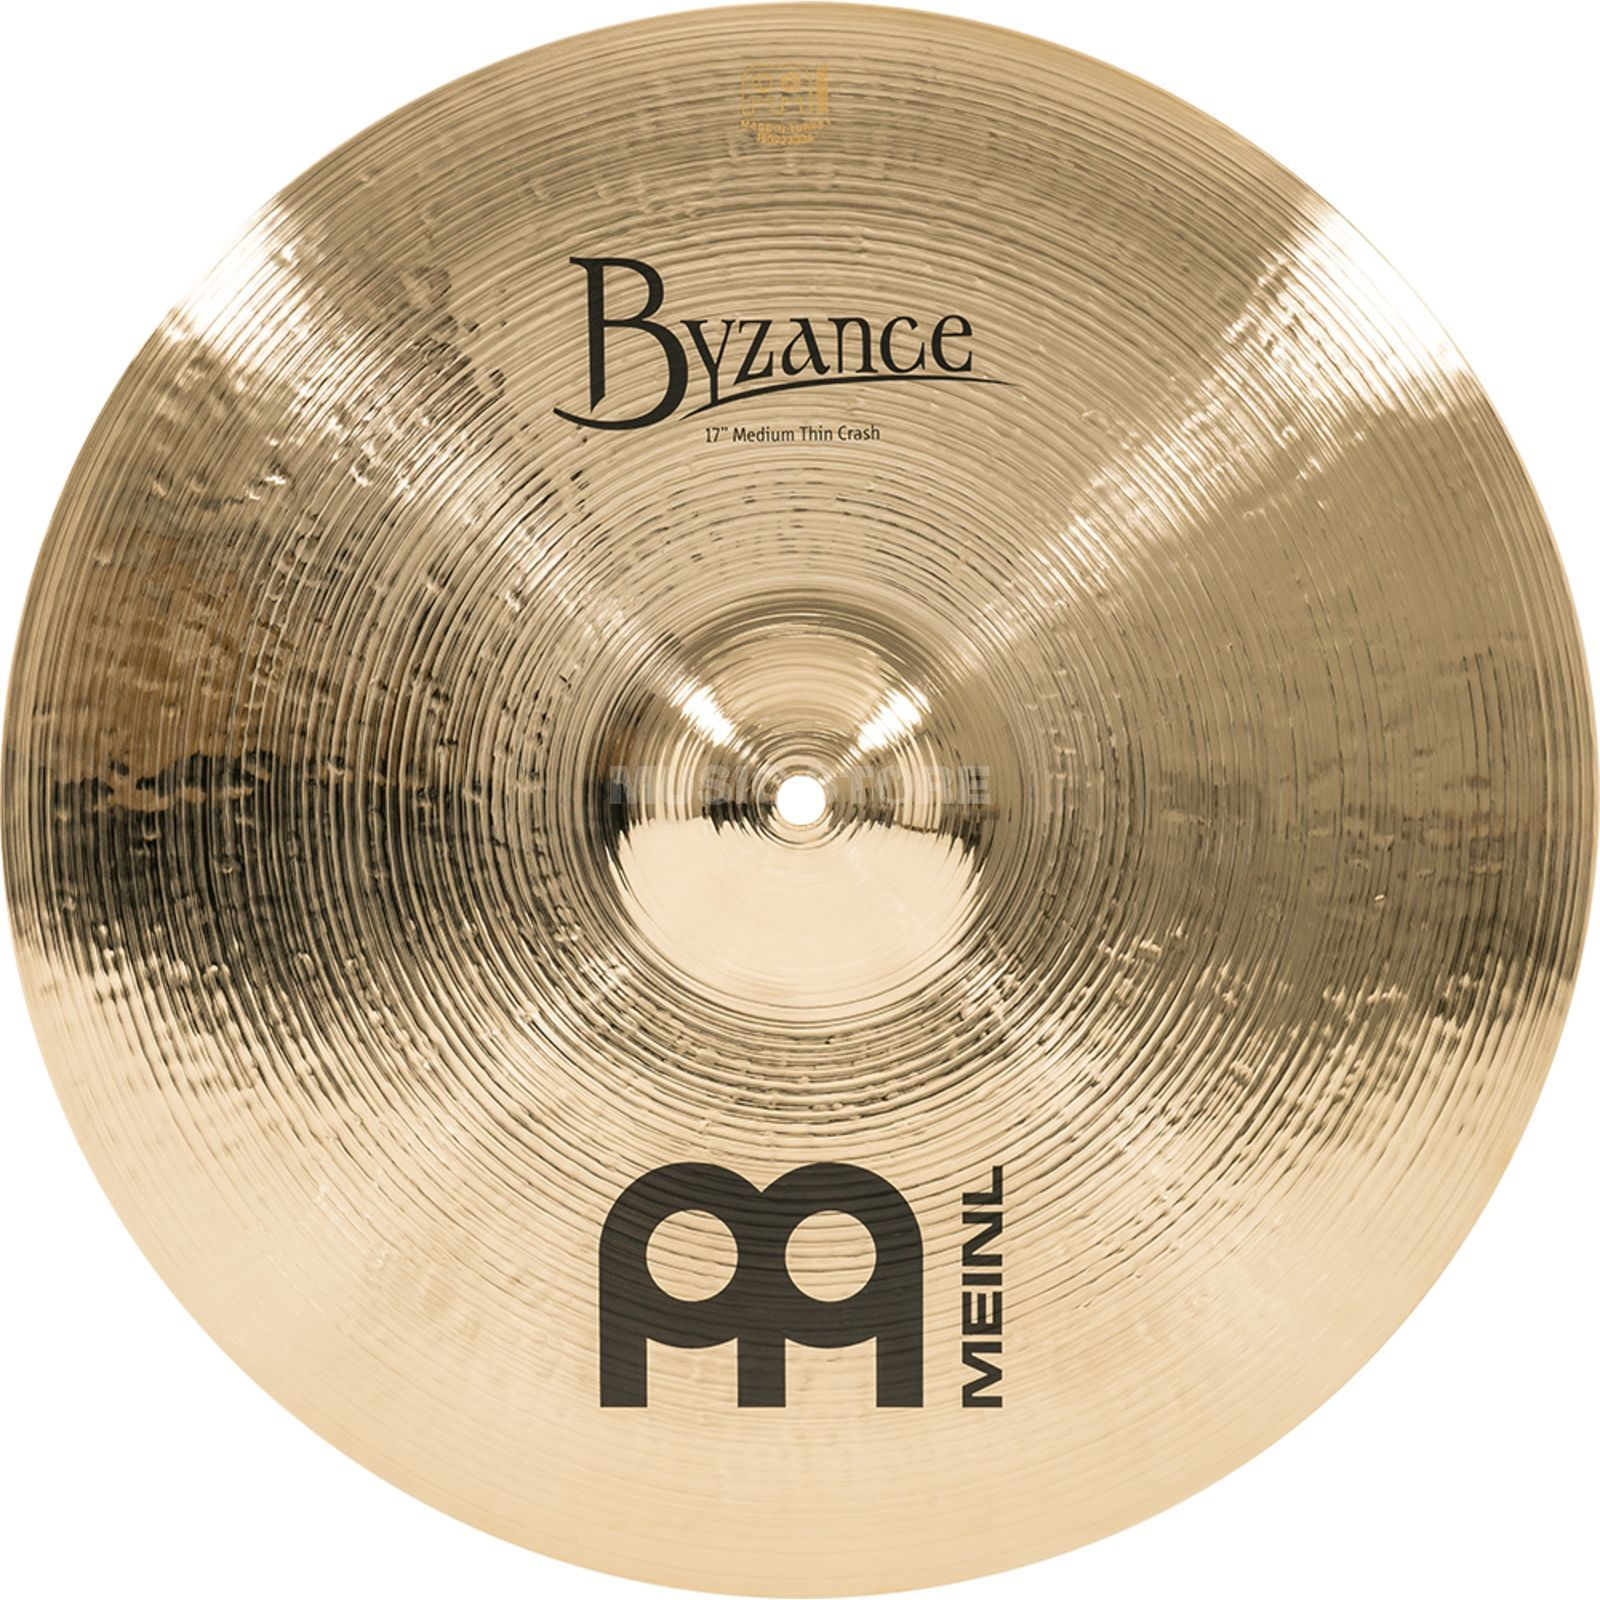 "Meinl Byzance Medium Thin Crash 17"" B17MTC-B, Brilliant Finish Productafbeelding"